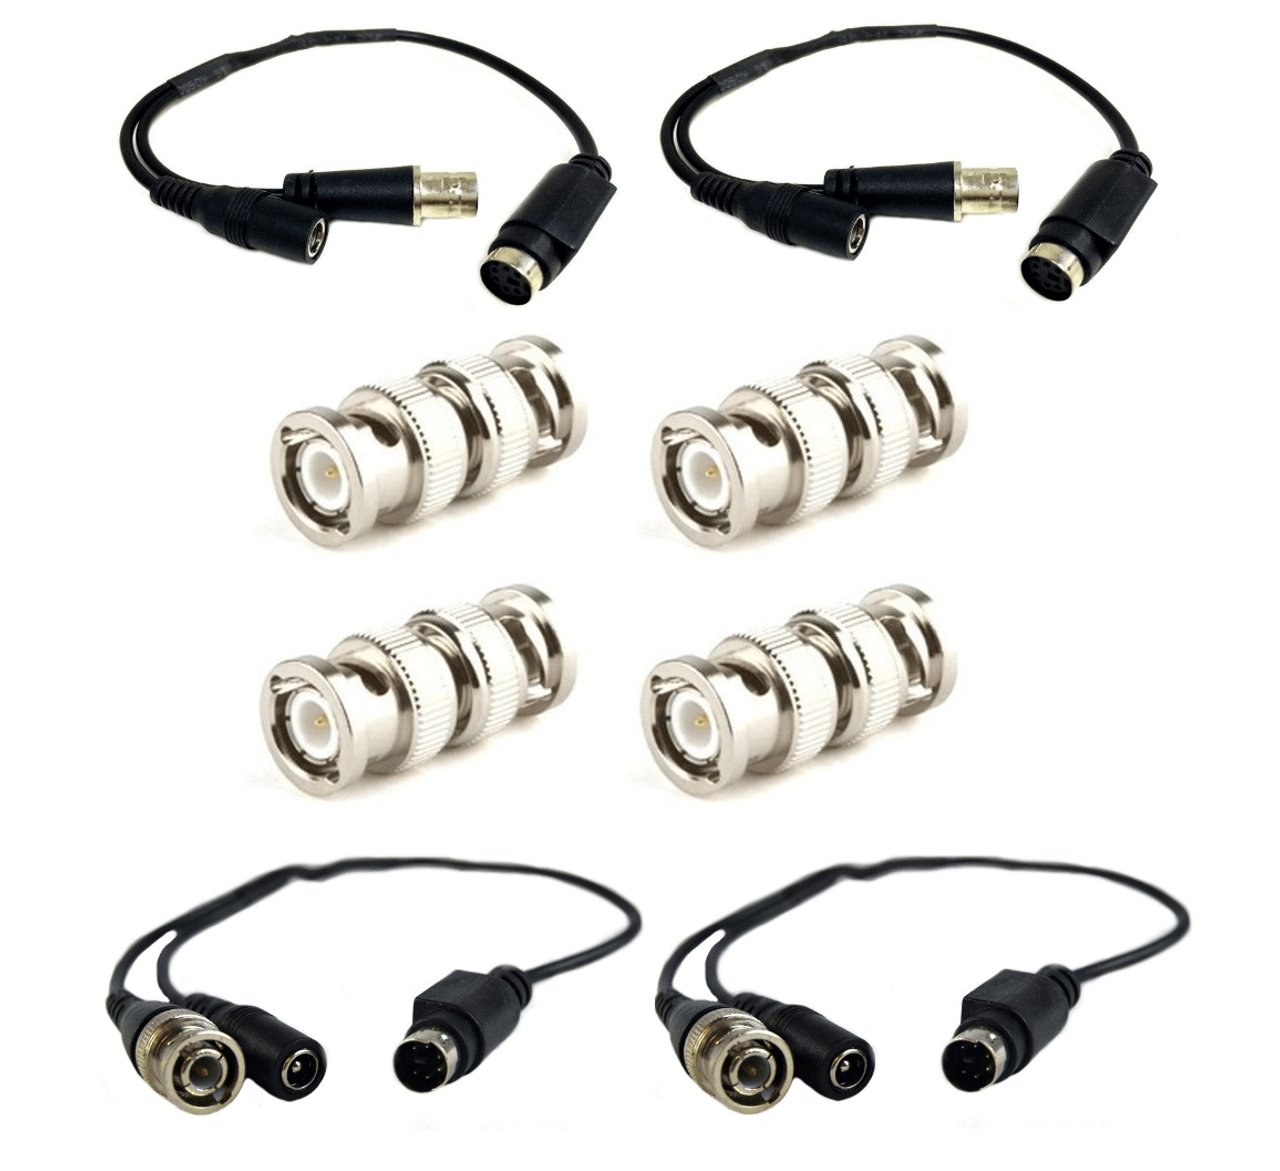 hight resolution of 2 pair male female lorex cable 4 pin din connector w 4 bnc